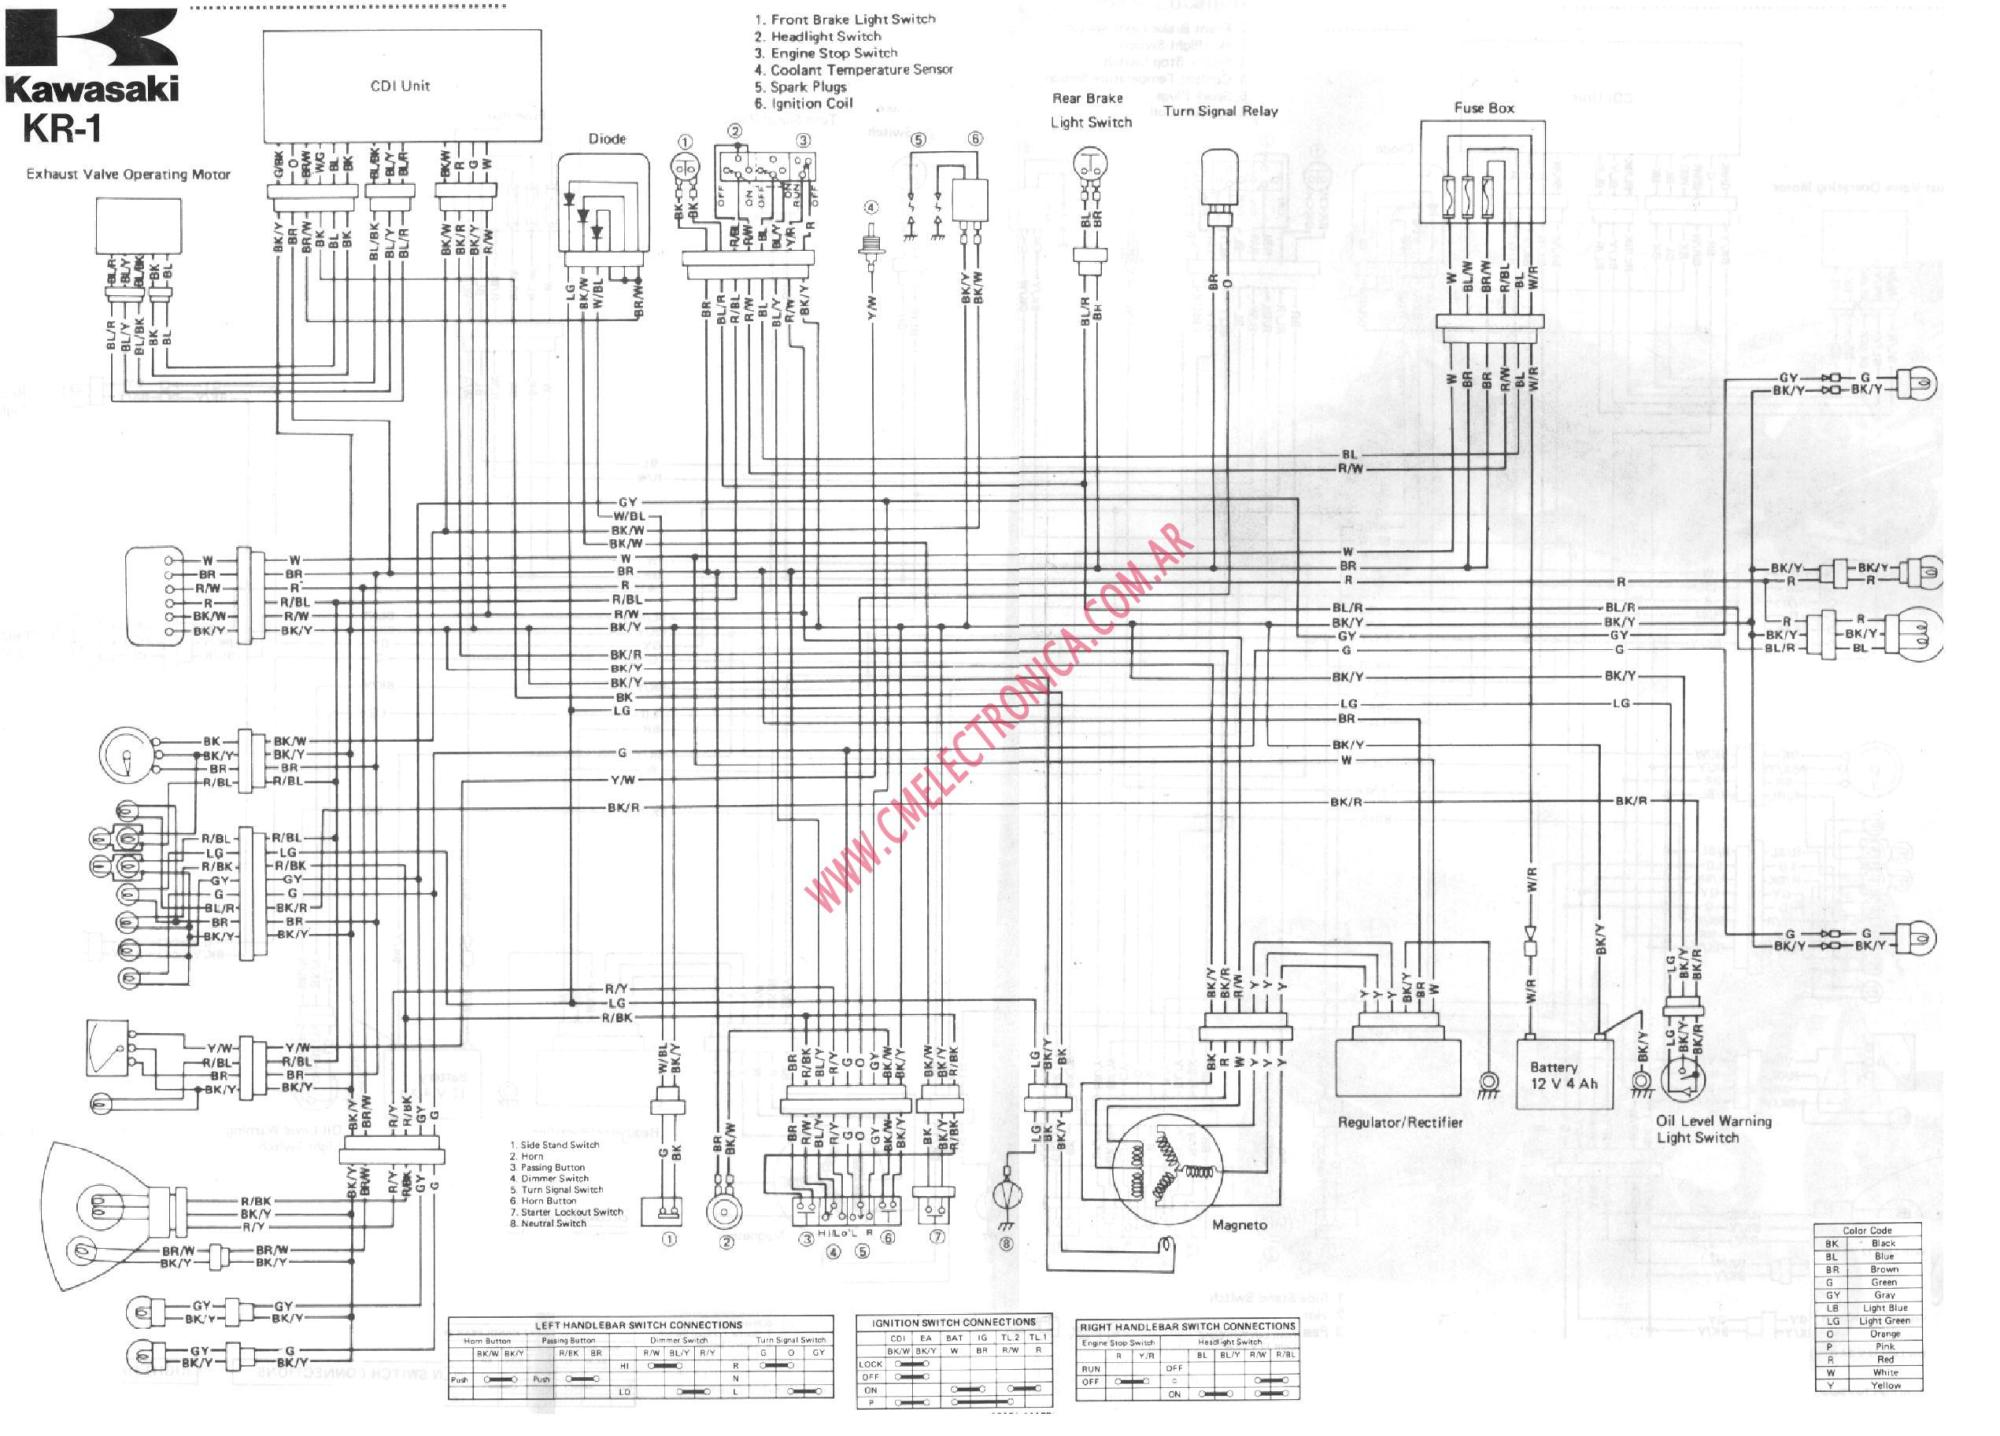 hight resolution of wiring diagram 1986 kawasaki zx600r wiring diagram usedwrg 1641 wiring diagram 1986 kawasaki zx600r kawasaki